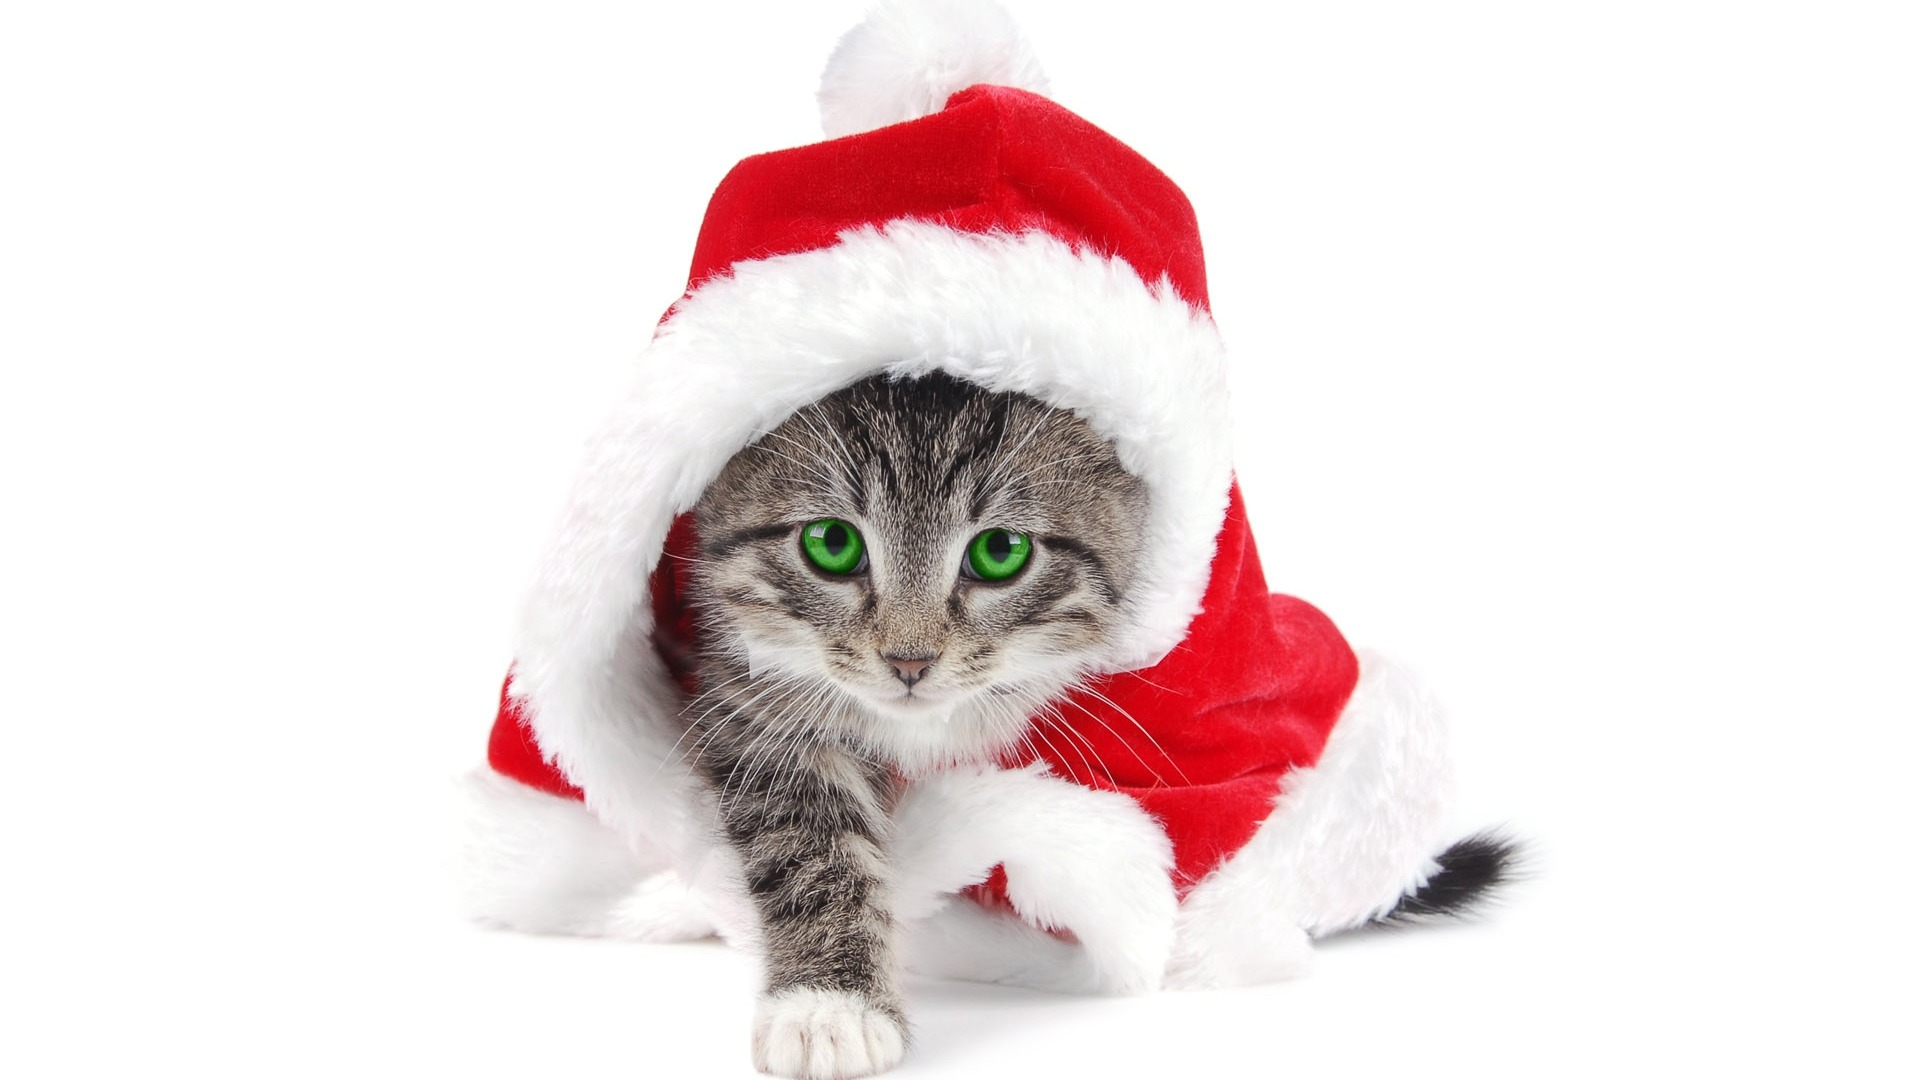 Kittens Wearing Christmas Hats File:wearing Christmas Hats